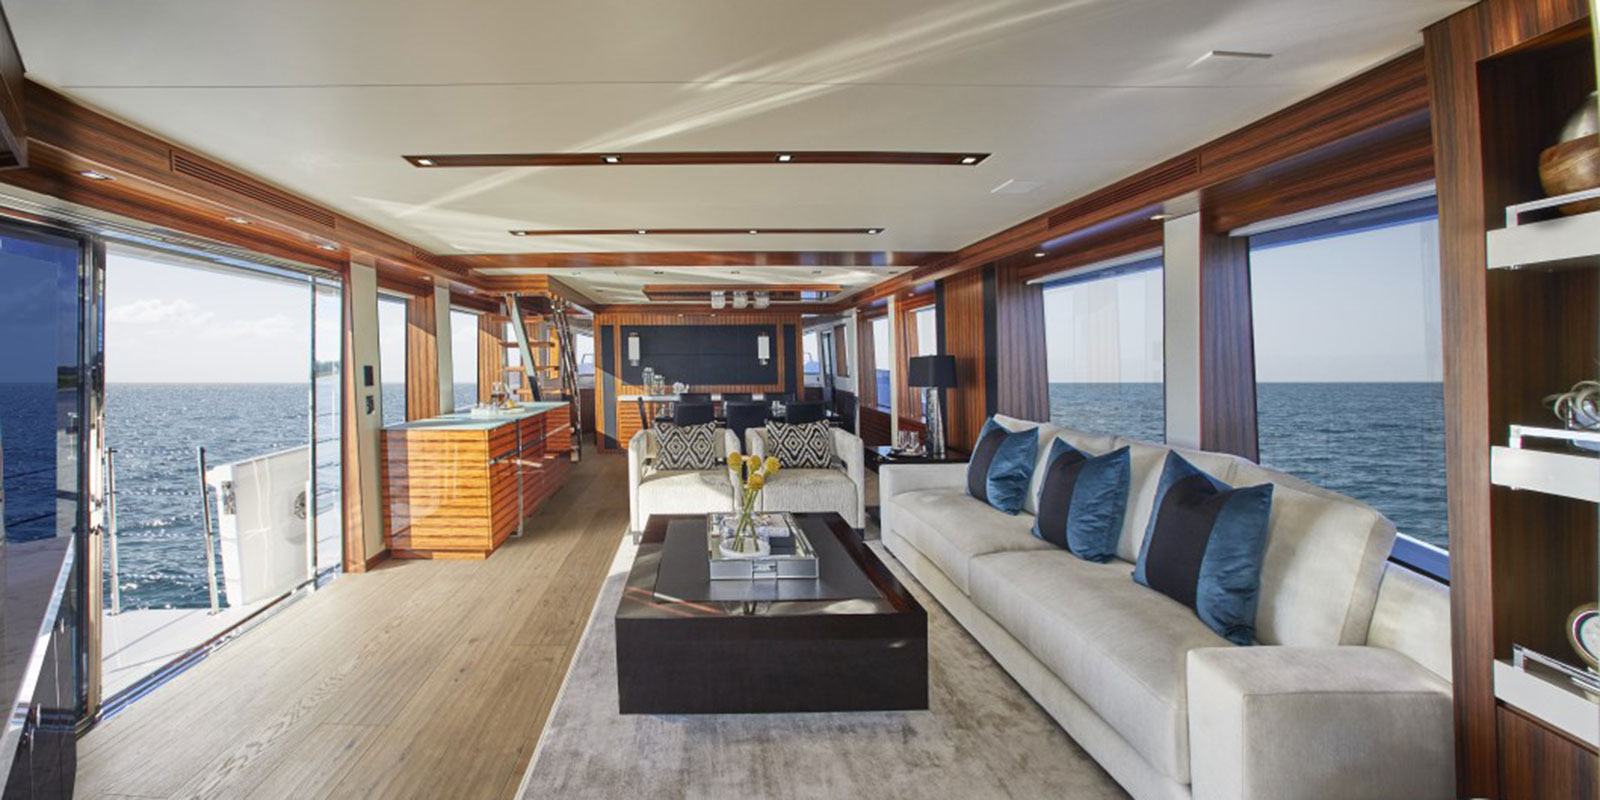 Hatteras M90 — Luxurious Interior Materials